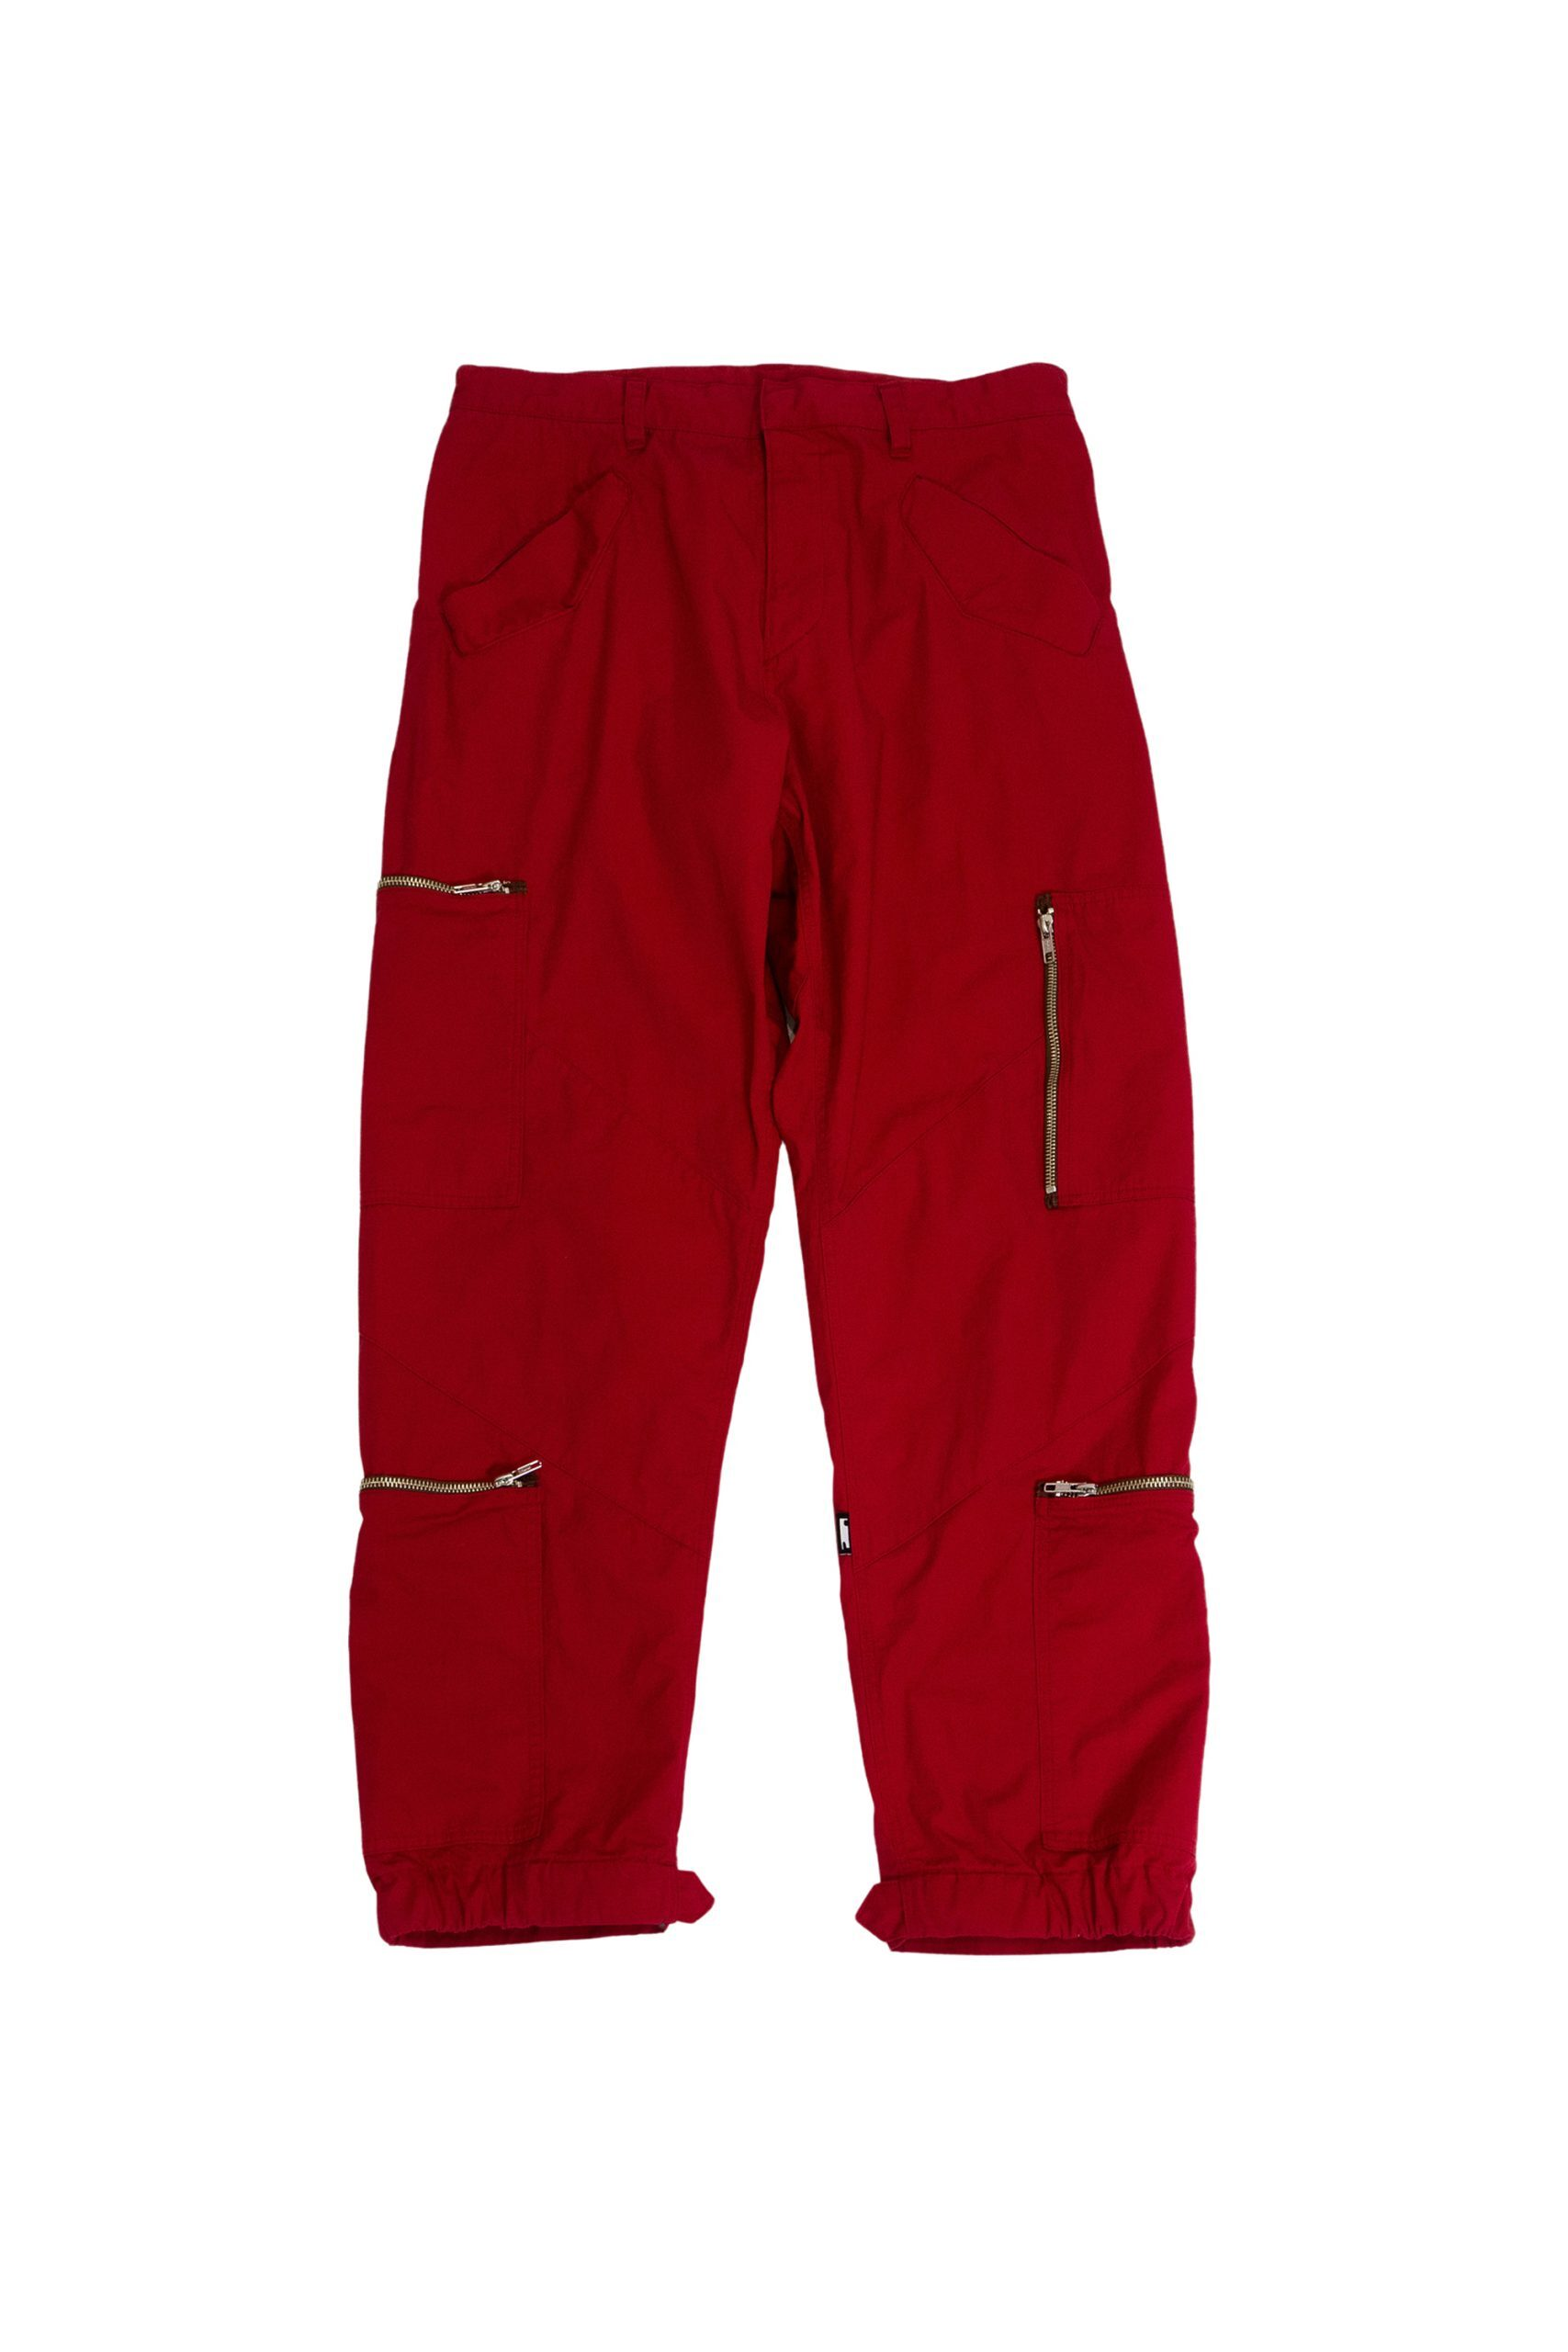 PHINGERIN PLOWING PANTS POCKETS LOW RED